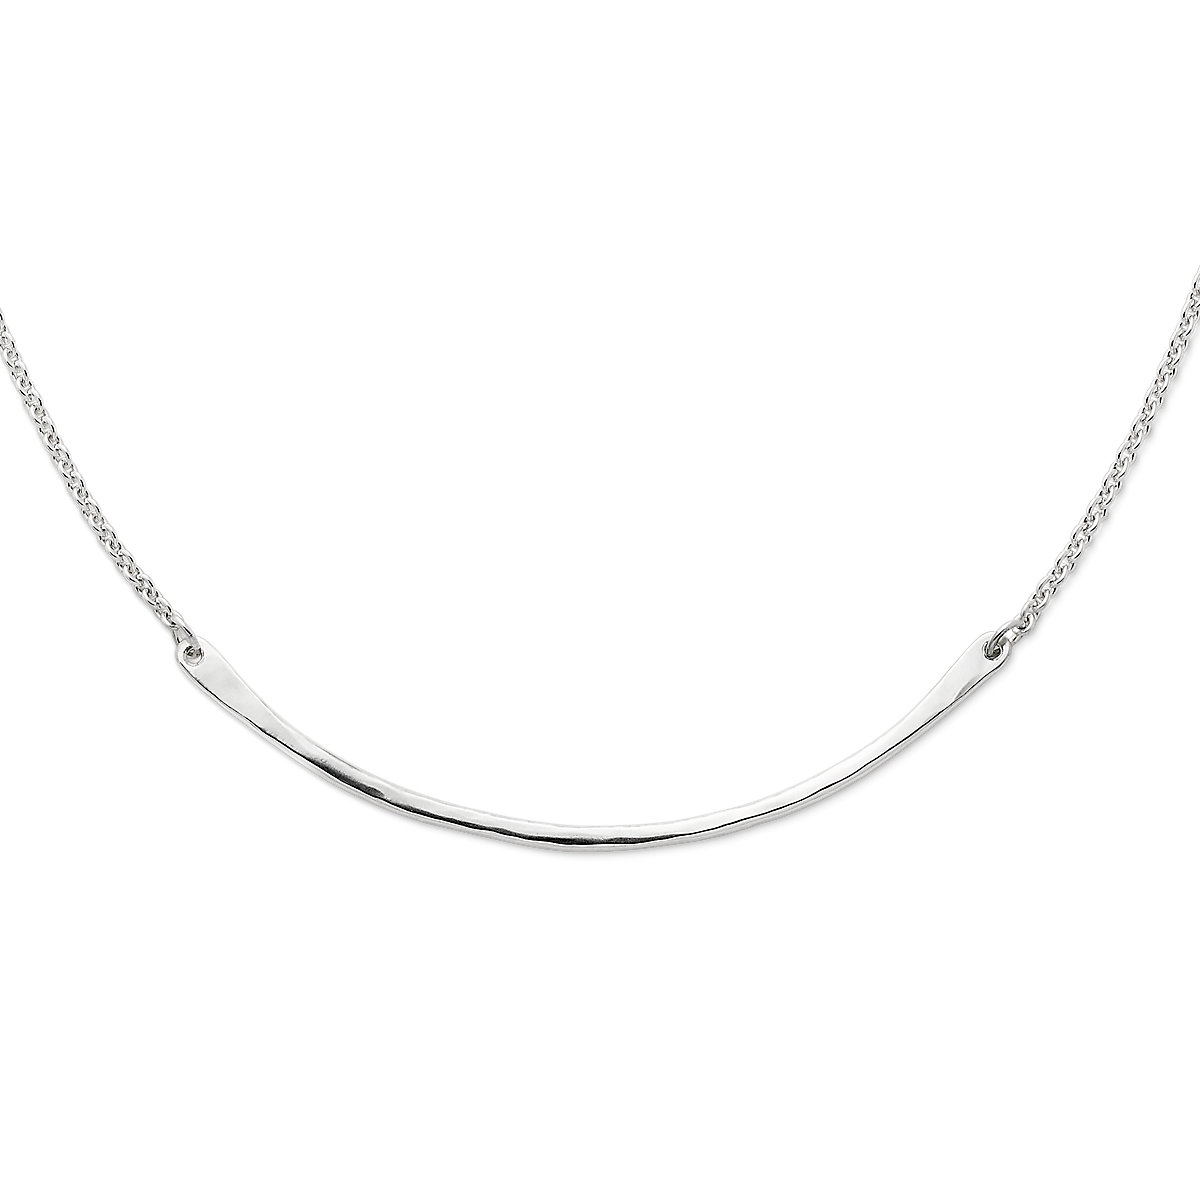 Hammered Crescent Changeable Charm Holder Necklace   James Avery